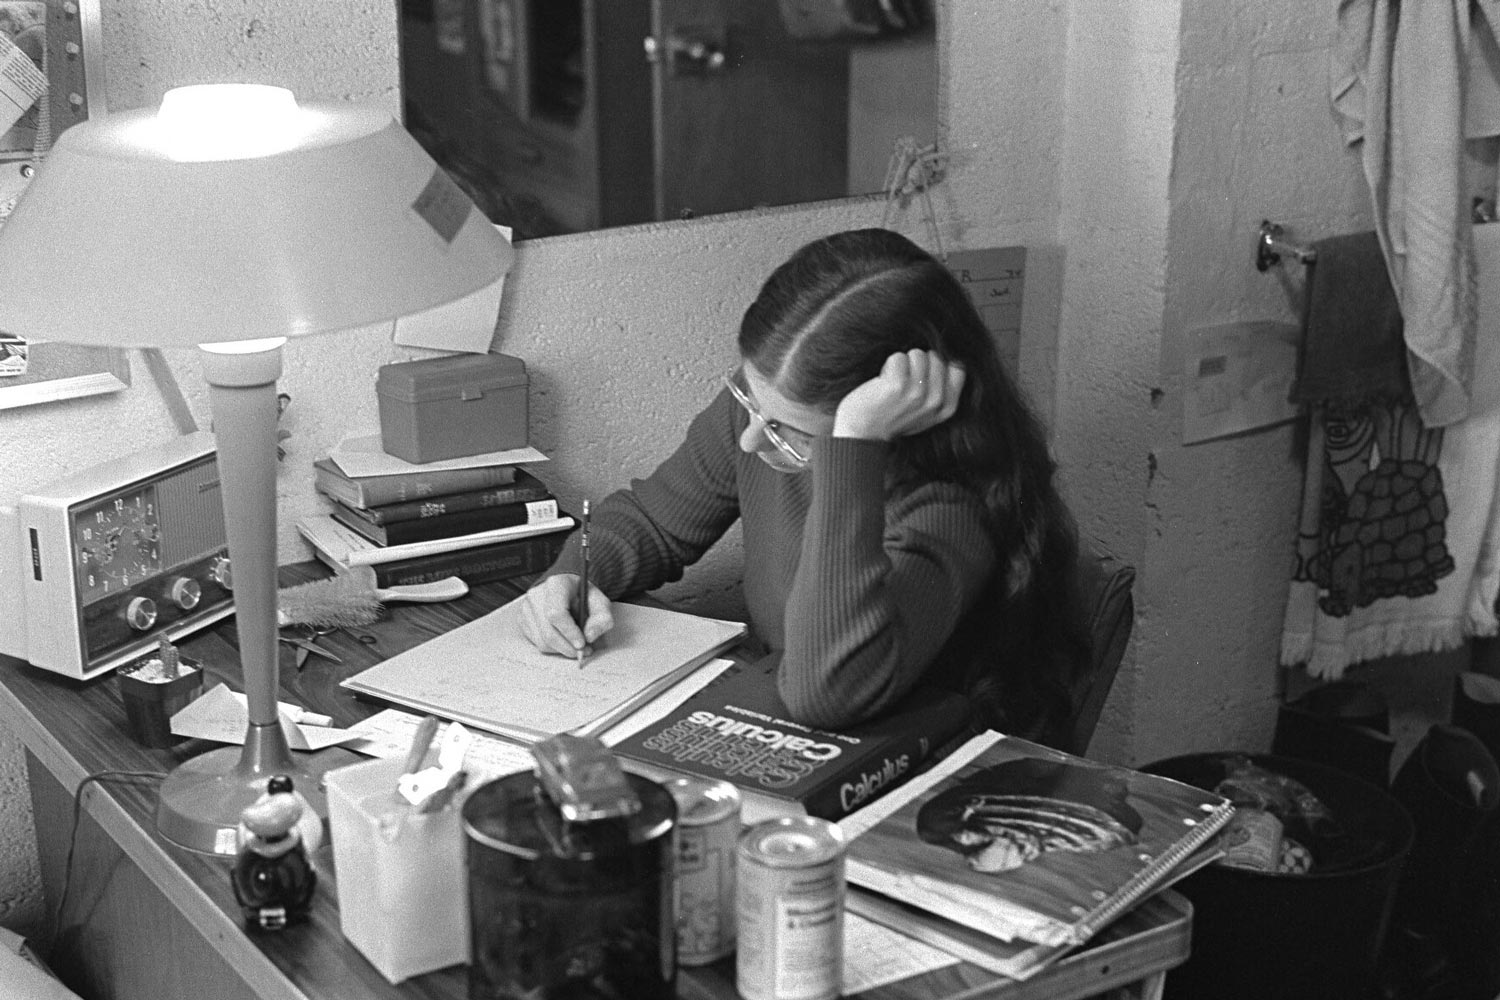 A student studied in her dorm room in December 1974, a few years after the University's College of Arts & Sciences opened to women.